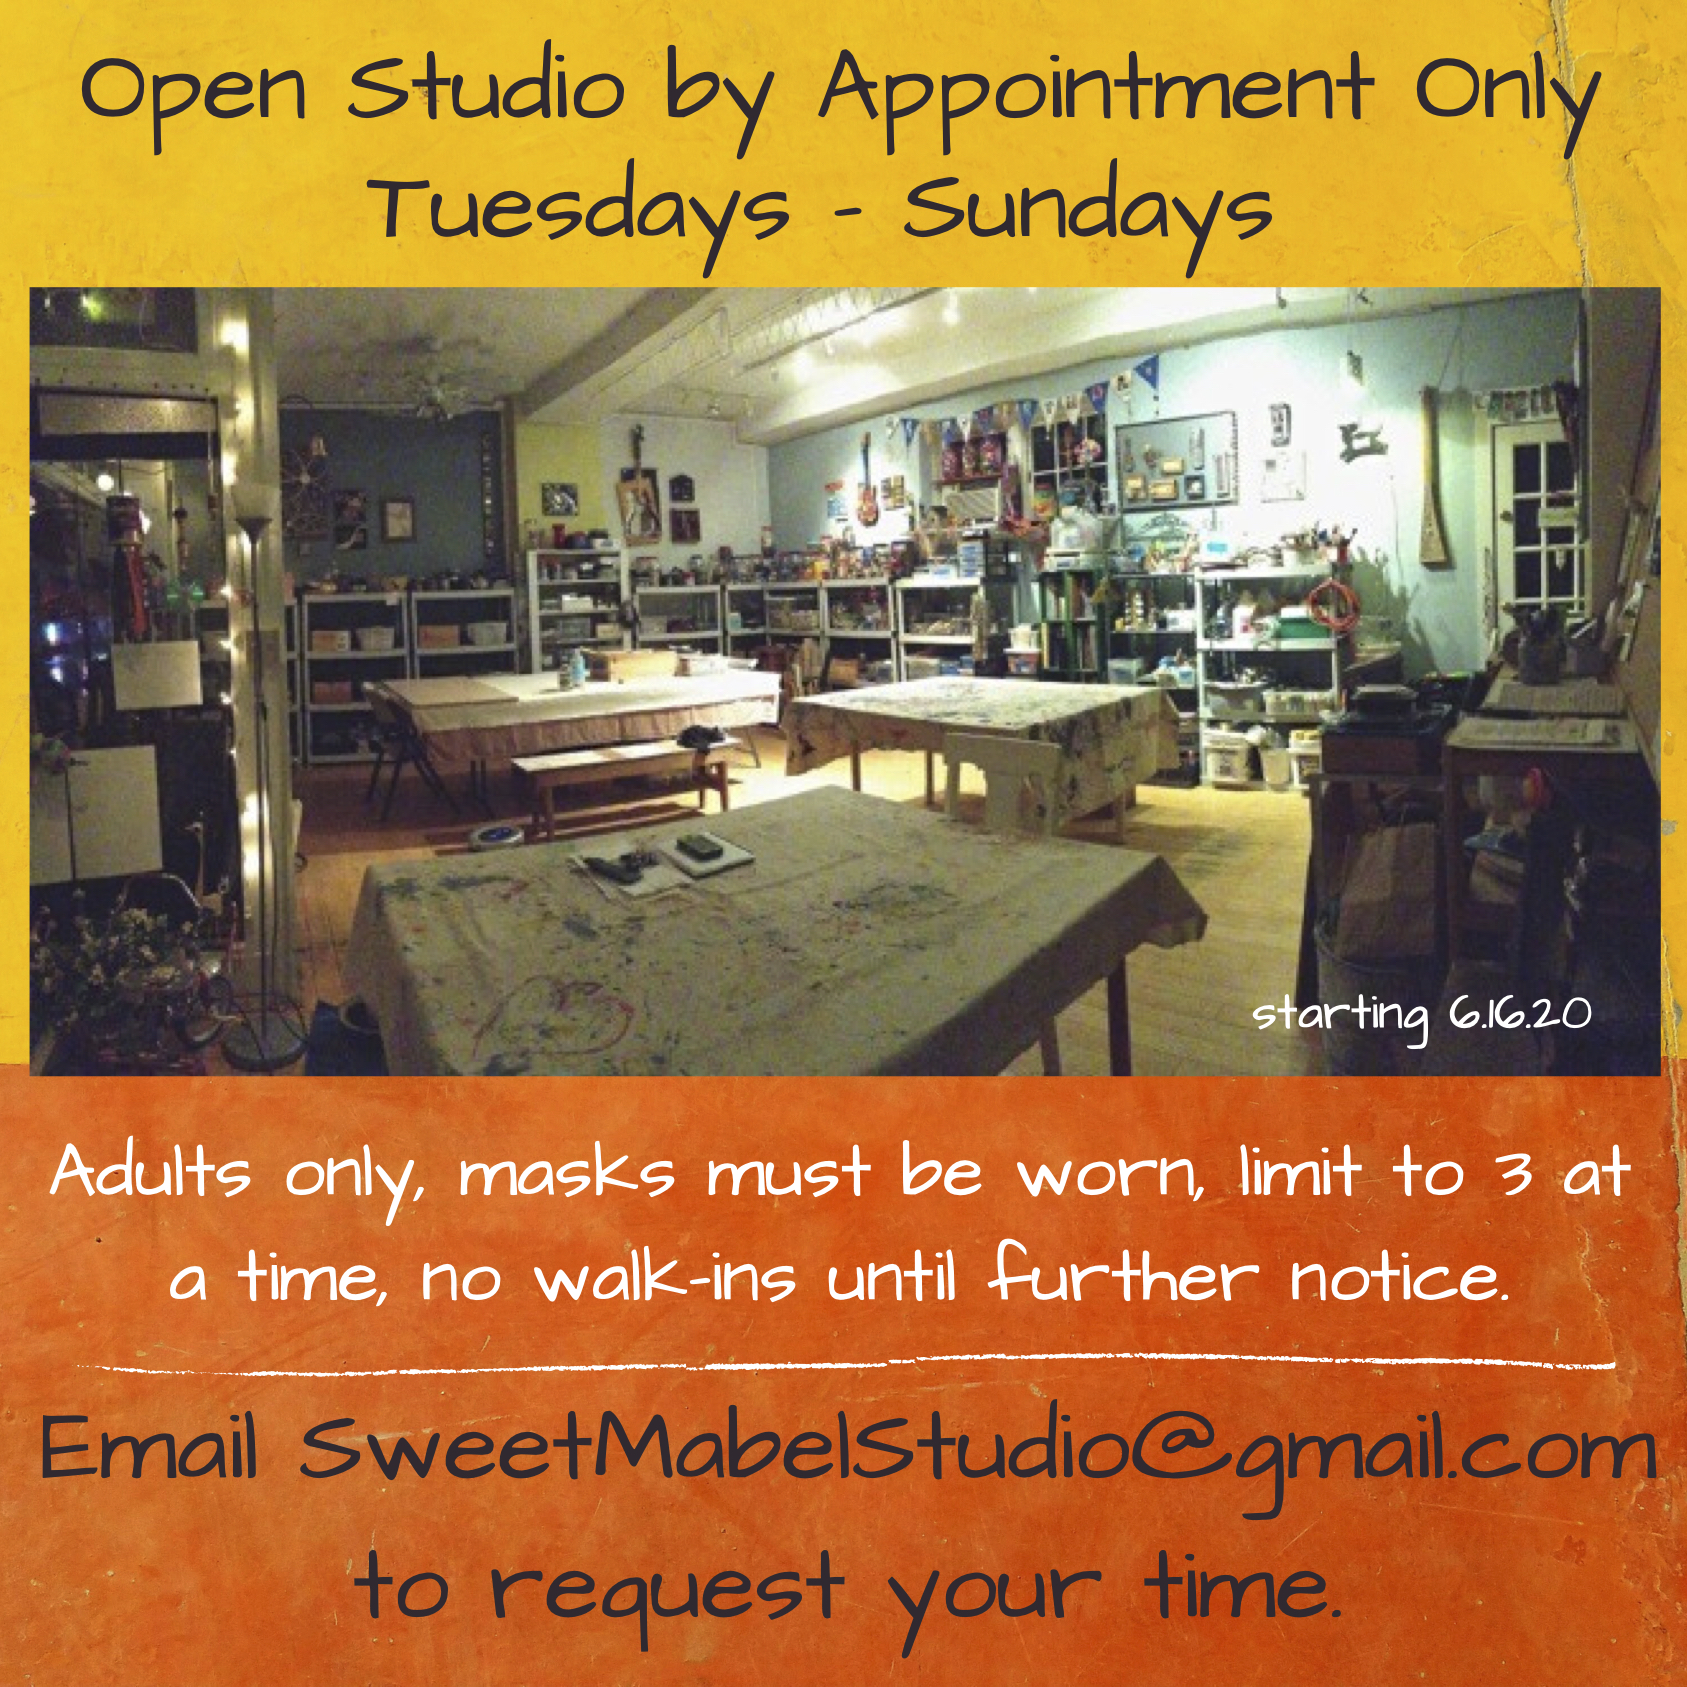 Open Studio by Appointment Only 12-6